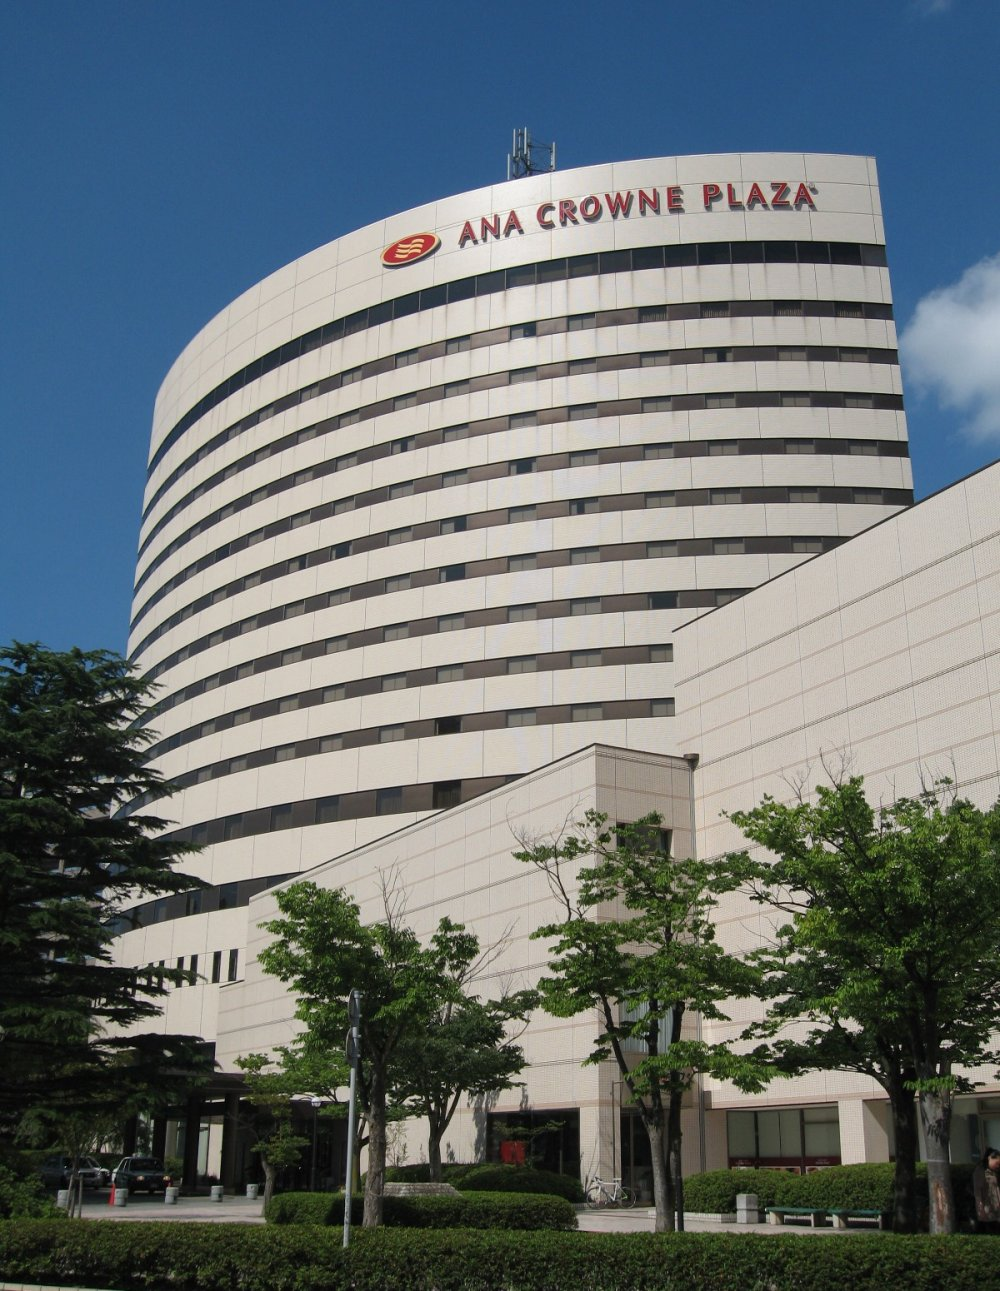 The exterior of the ANA Crowne Plaza in Niigat